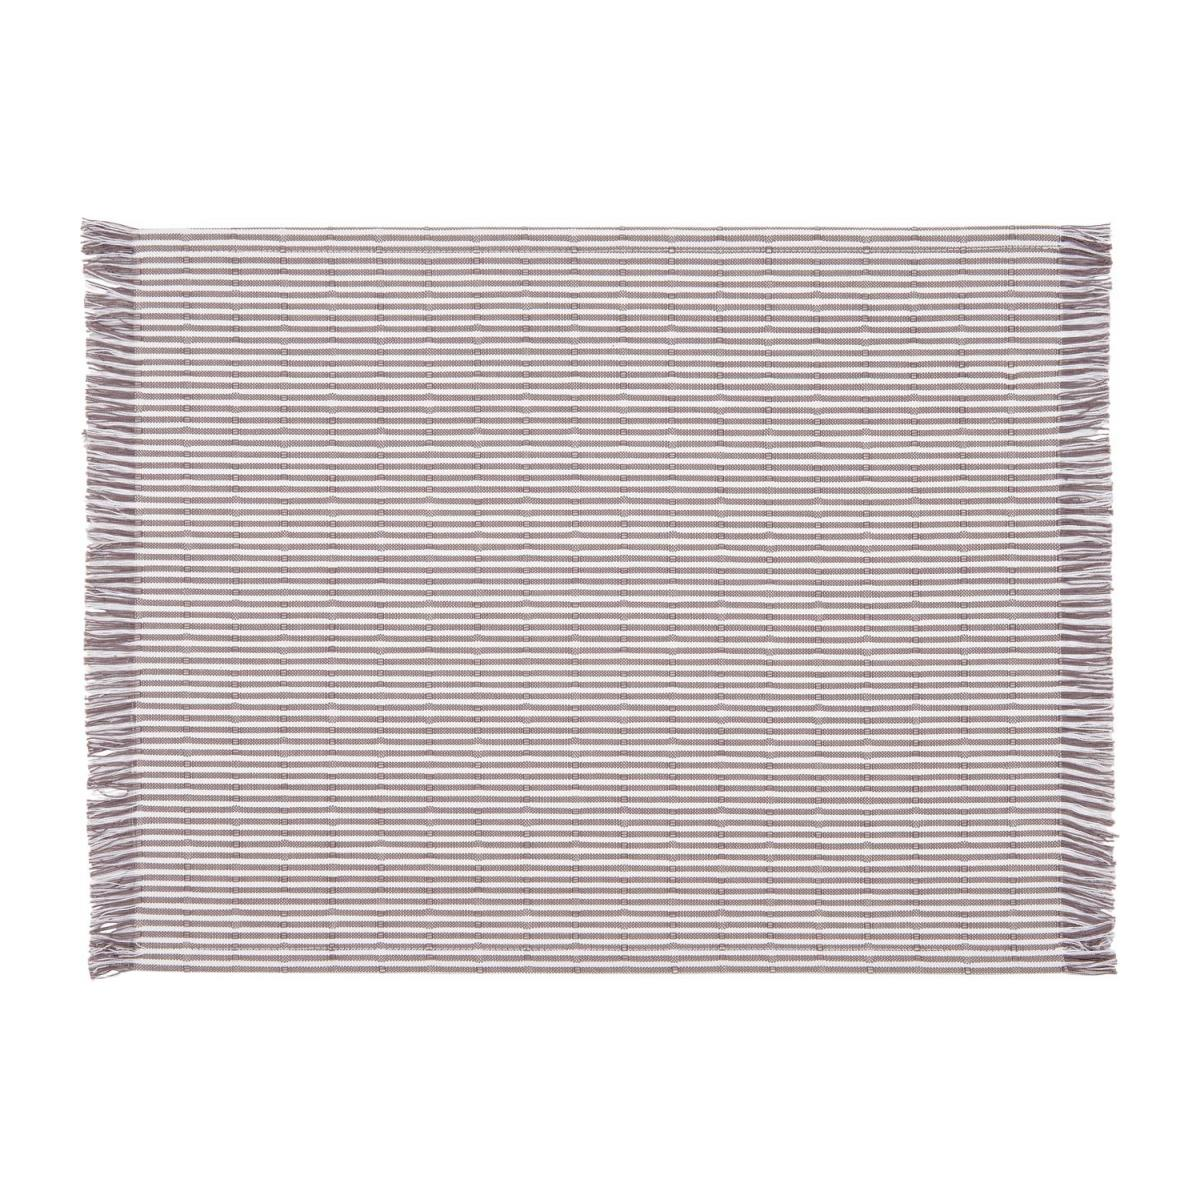 Placemat with stripes made of cotton 30x40cm, red &, brownish-grey n°1